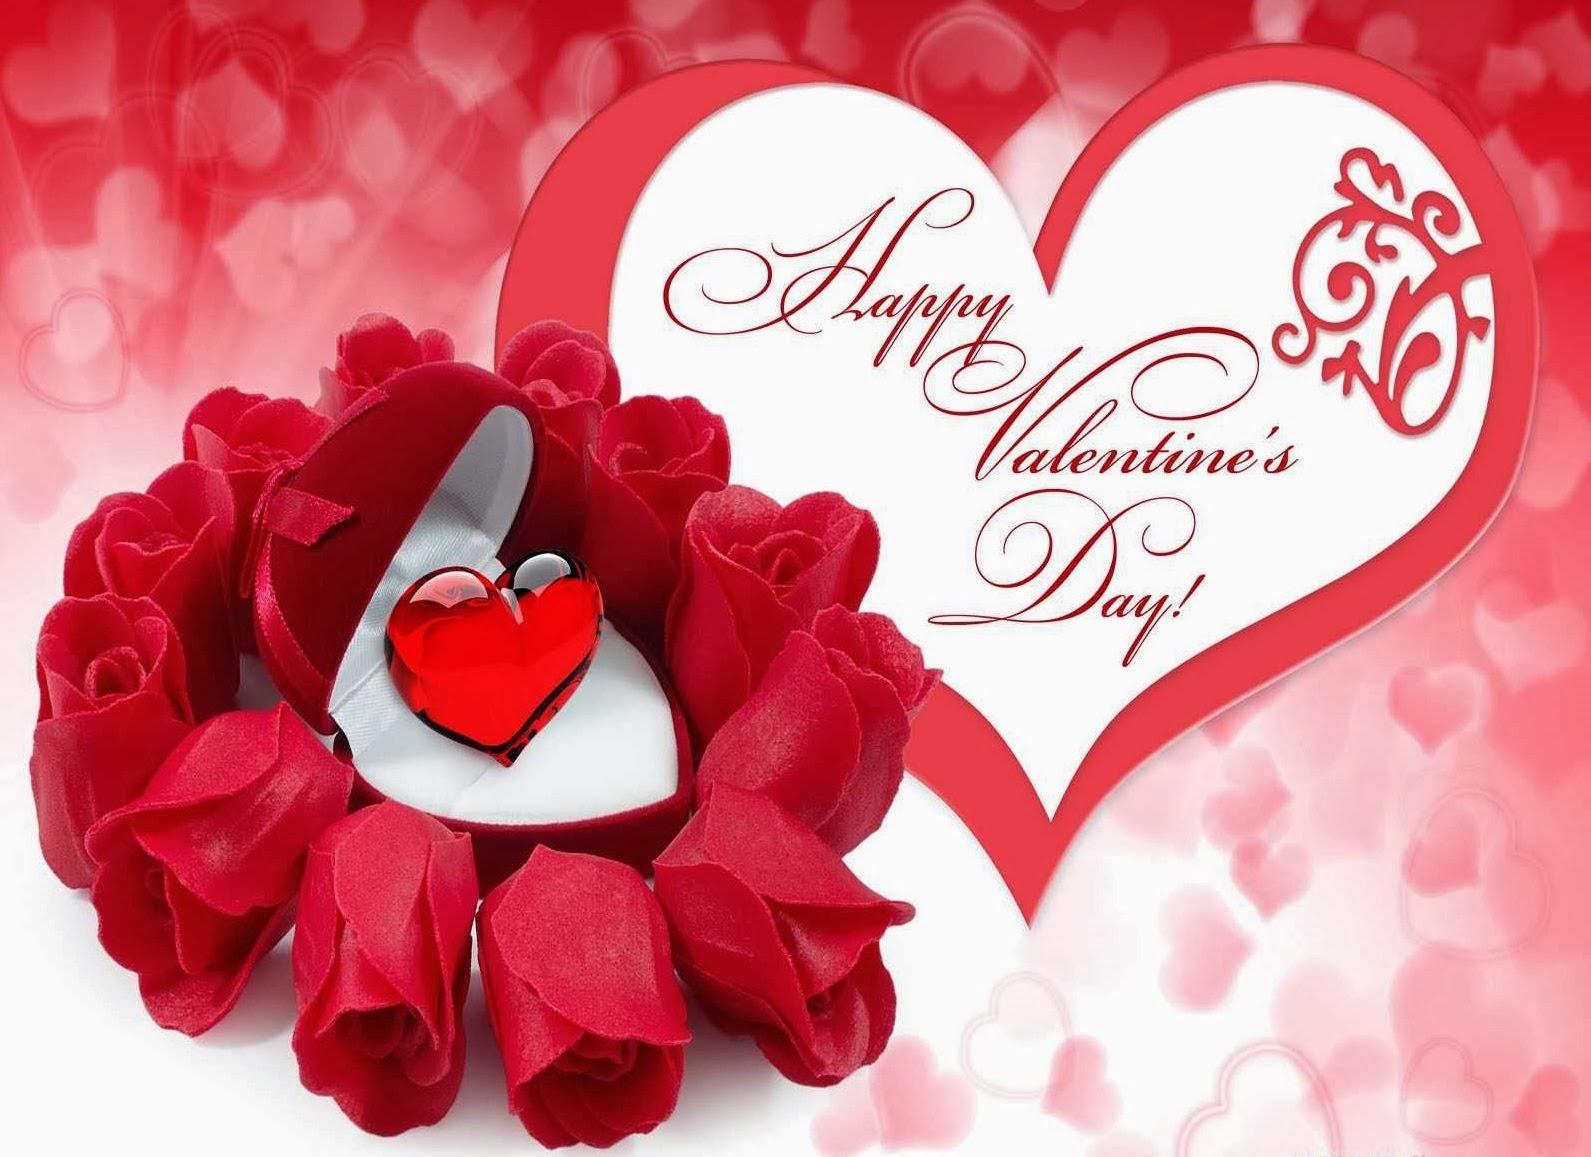 Romantic-Valentines-Day-Cards-for-Husband-Heart-Giftbox.jpg